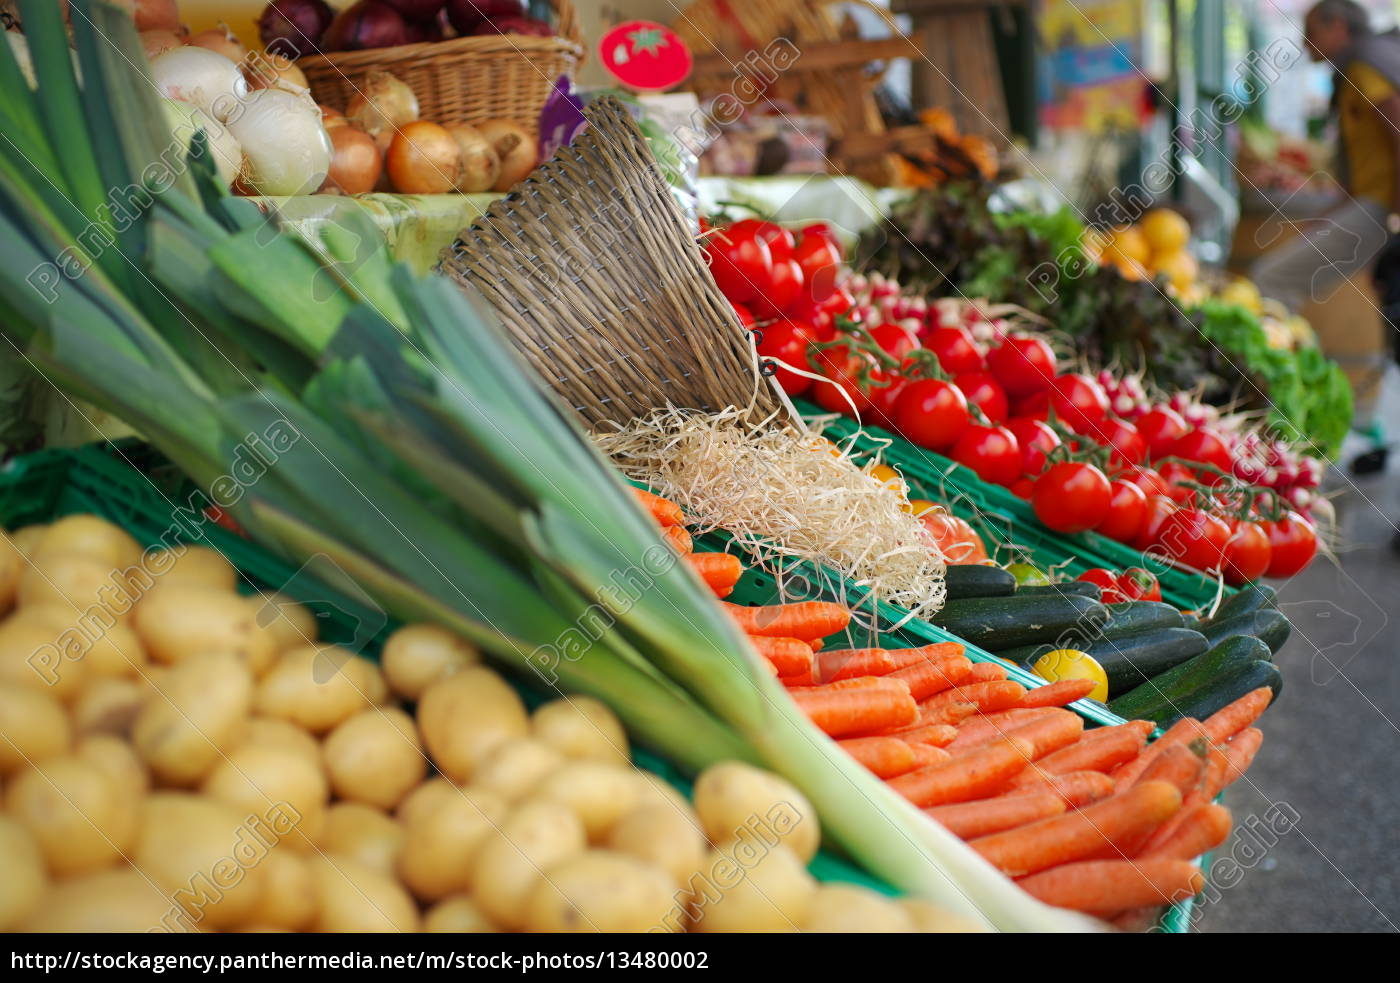 vegetable, stand - 13480002